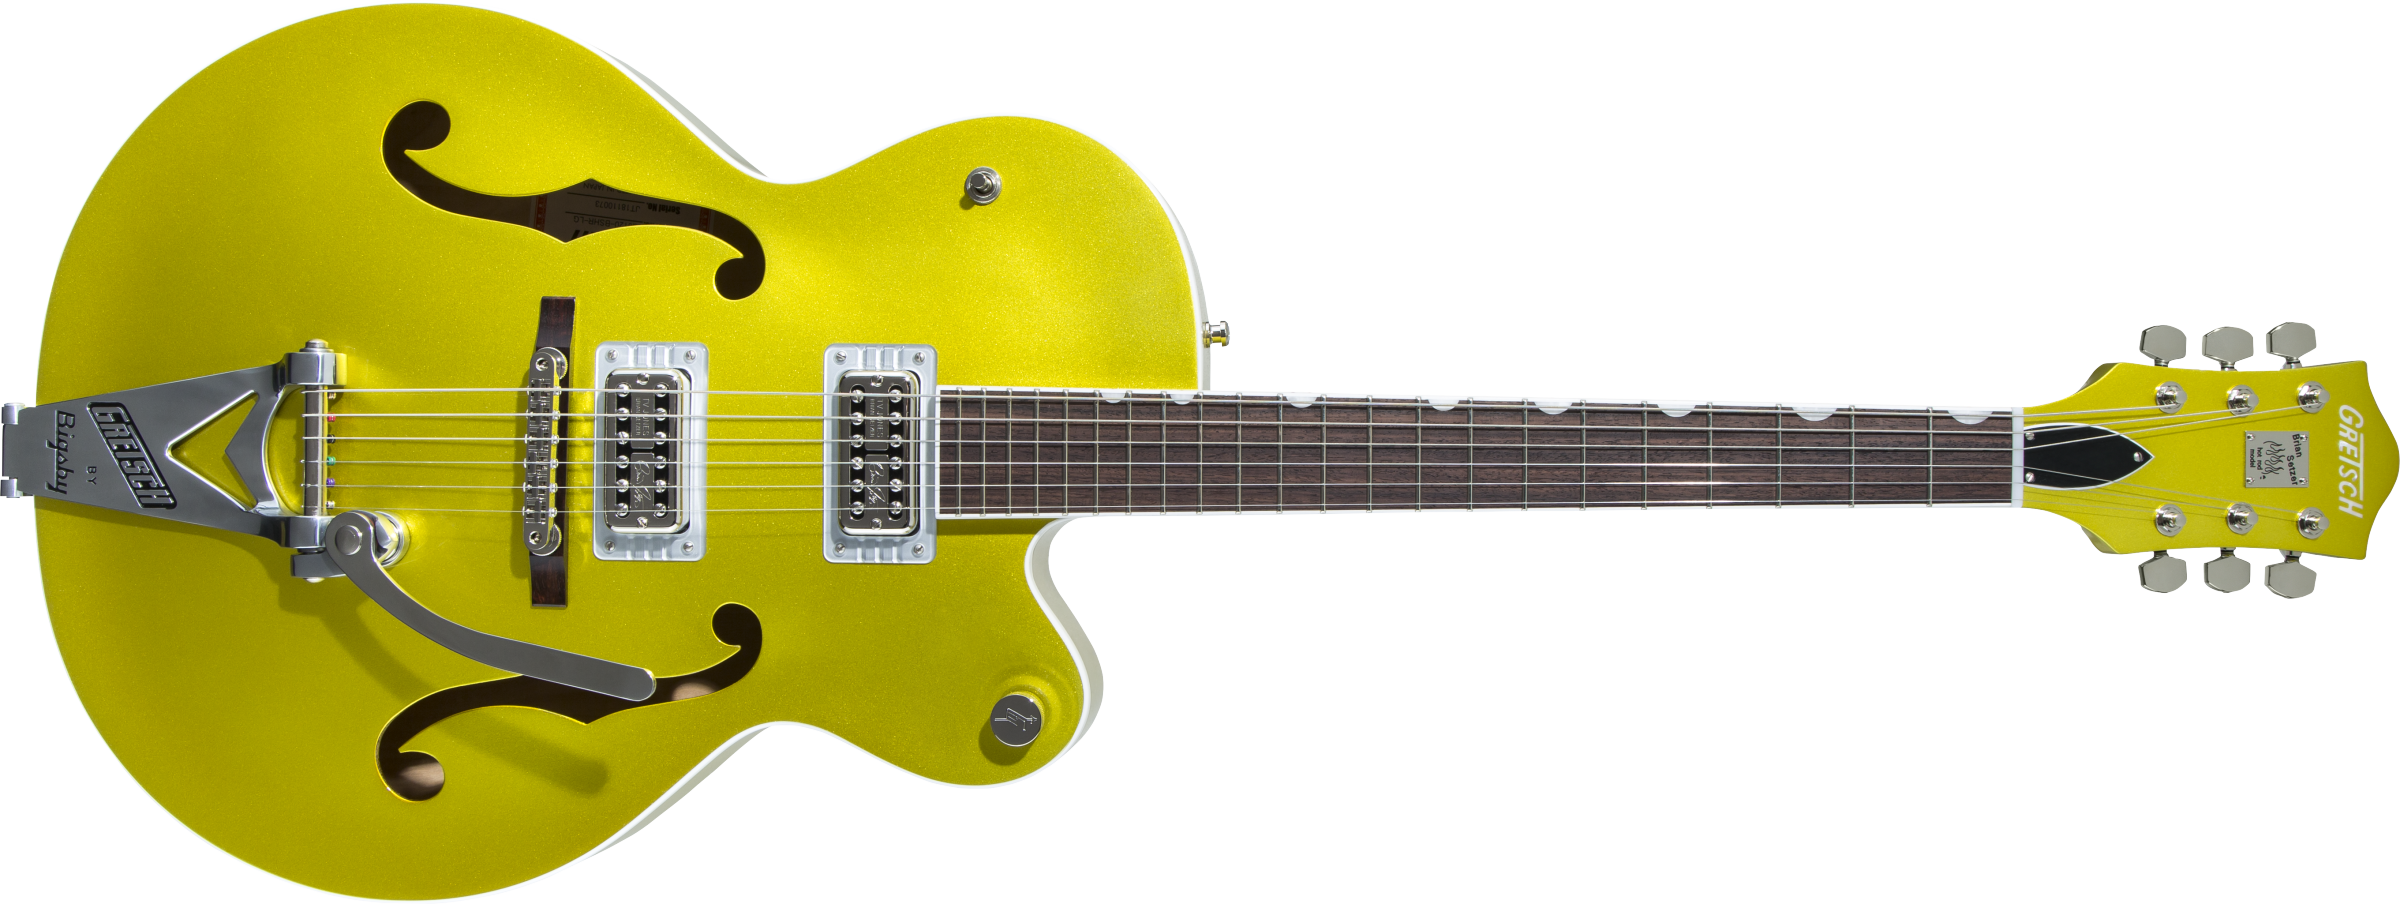 GRETSCH-G6120T-HR-Brian-Setzer-Signature-Hot-Rod-Hollow-Body-with-Bigsby-Rosewood-Fingerboard-Lime-Gold-sku-571004089